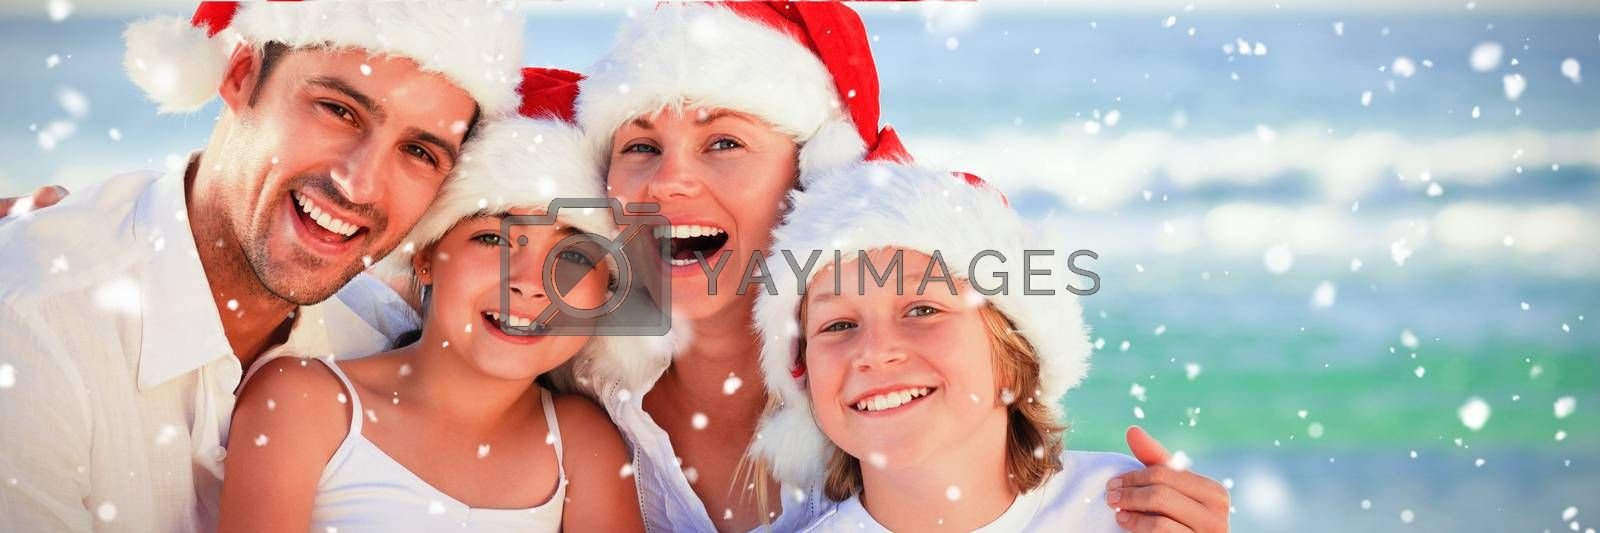 Family during Christmas day at the beach against snow falling